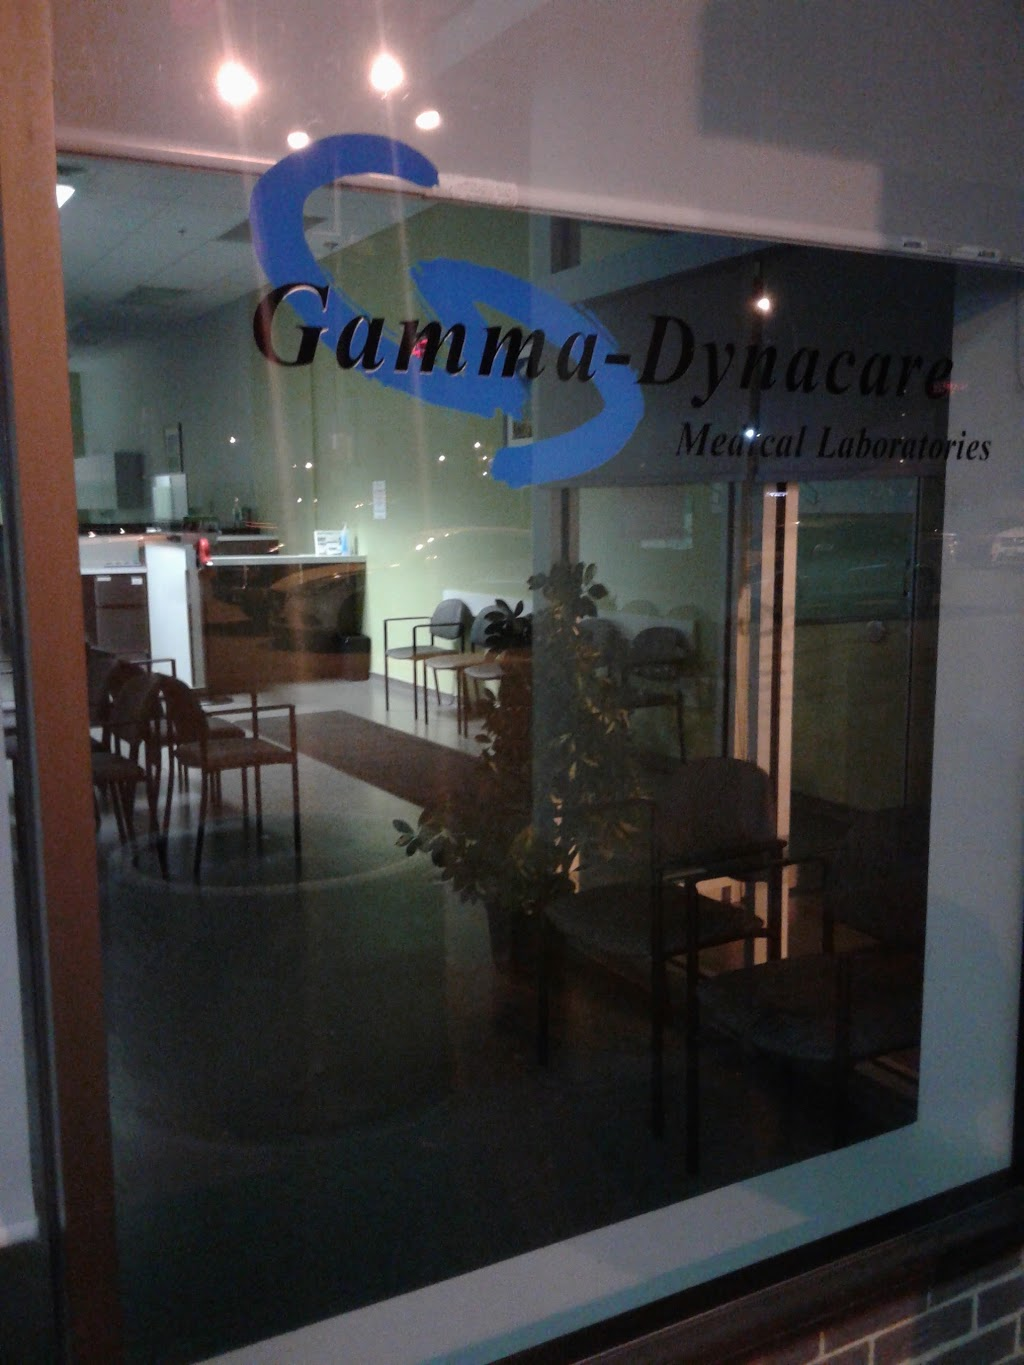 Dynacare Laboratory and Health Services Centre | health | 55 Marion St, Winnipeg, MB R2H 0R5, Canada | 2042378828 OR +1 204-237-8828